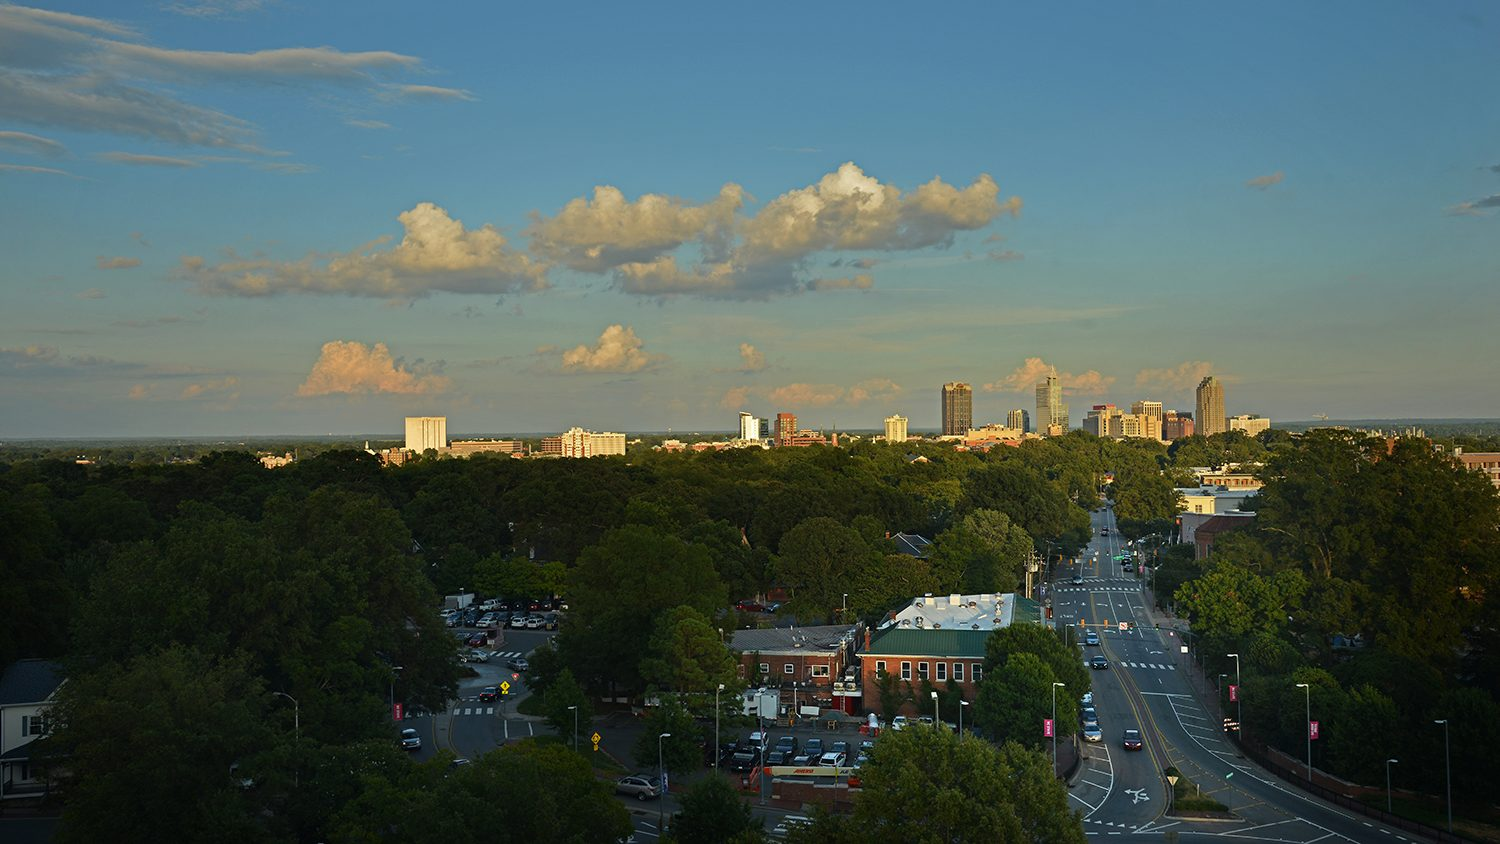 Photo of late afternoon sun in downtown Raleigh skyline.